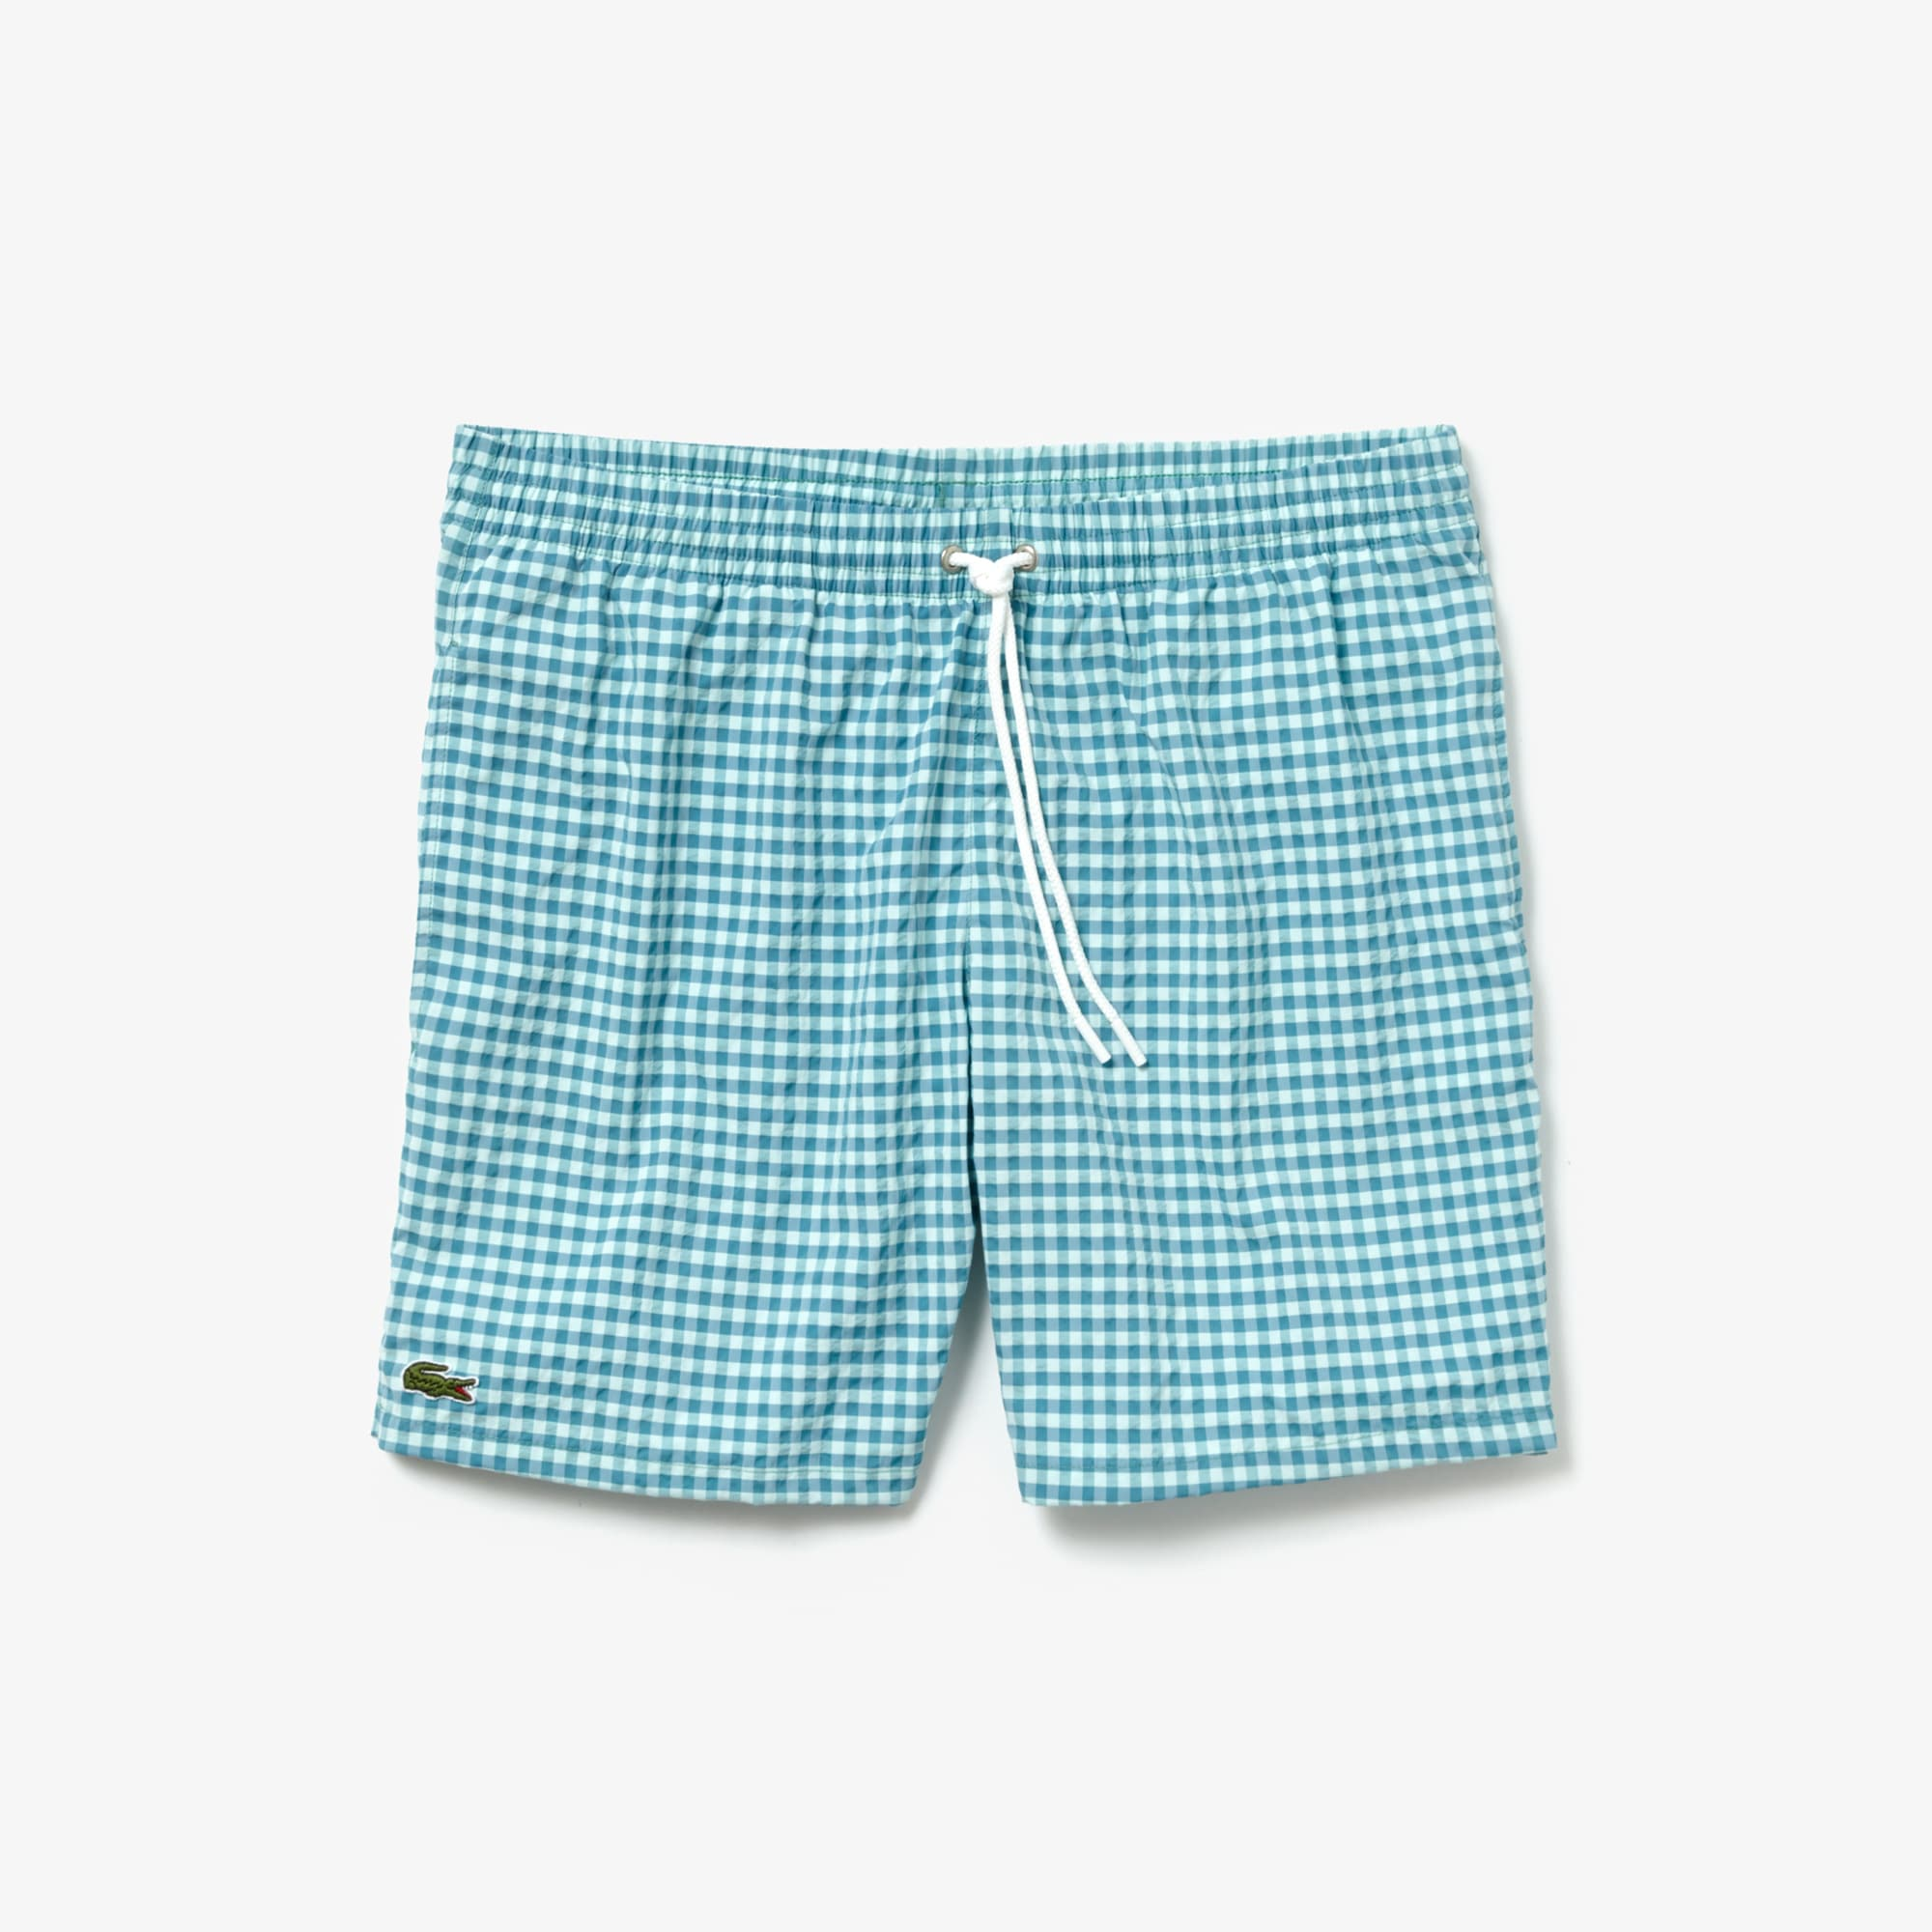 Men's Striped Seersucker Swim Trunks